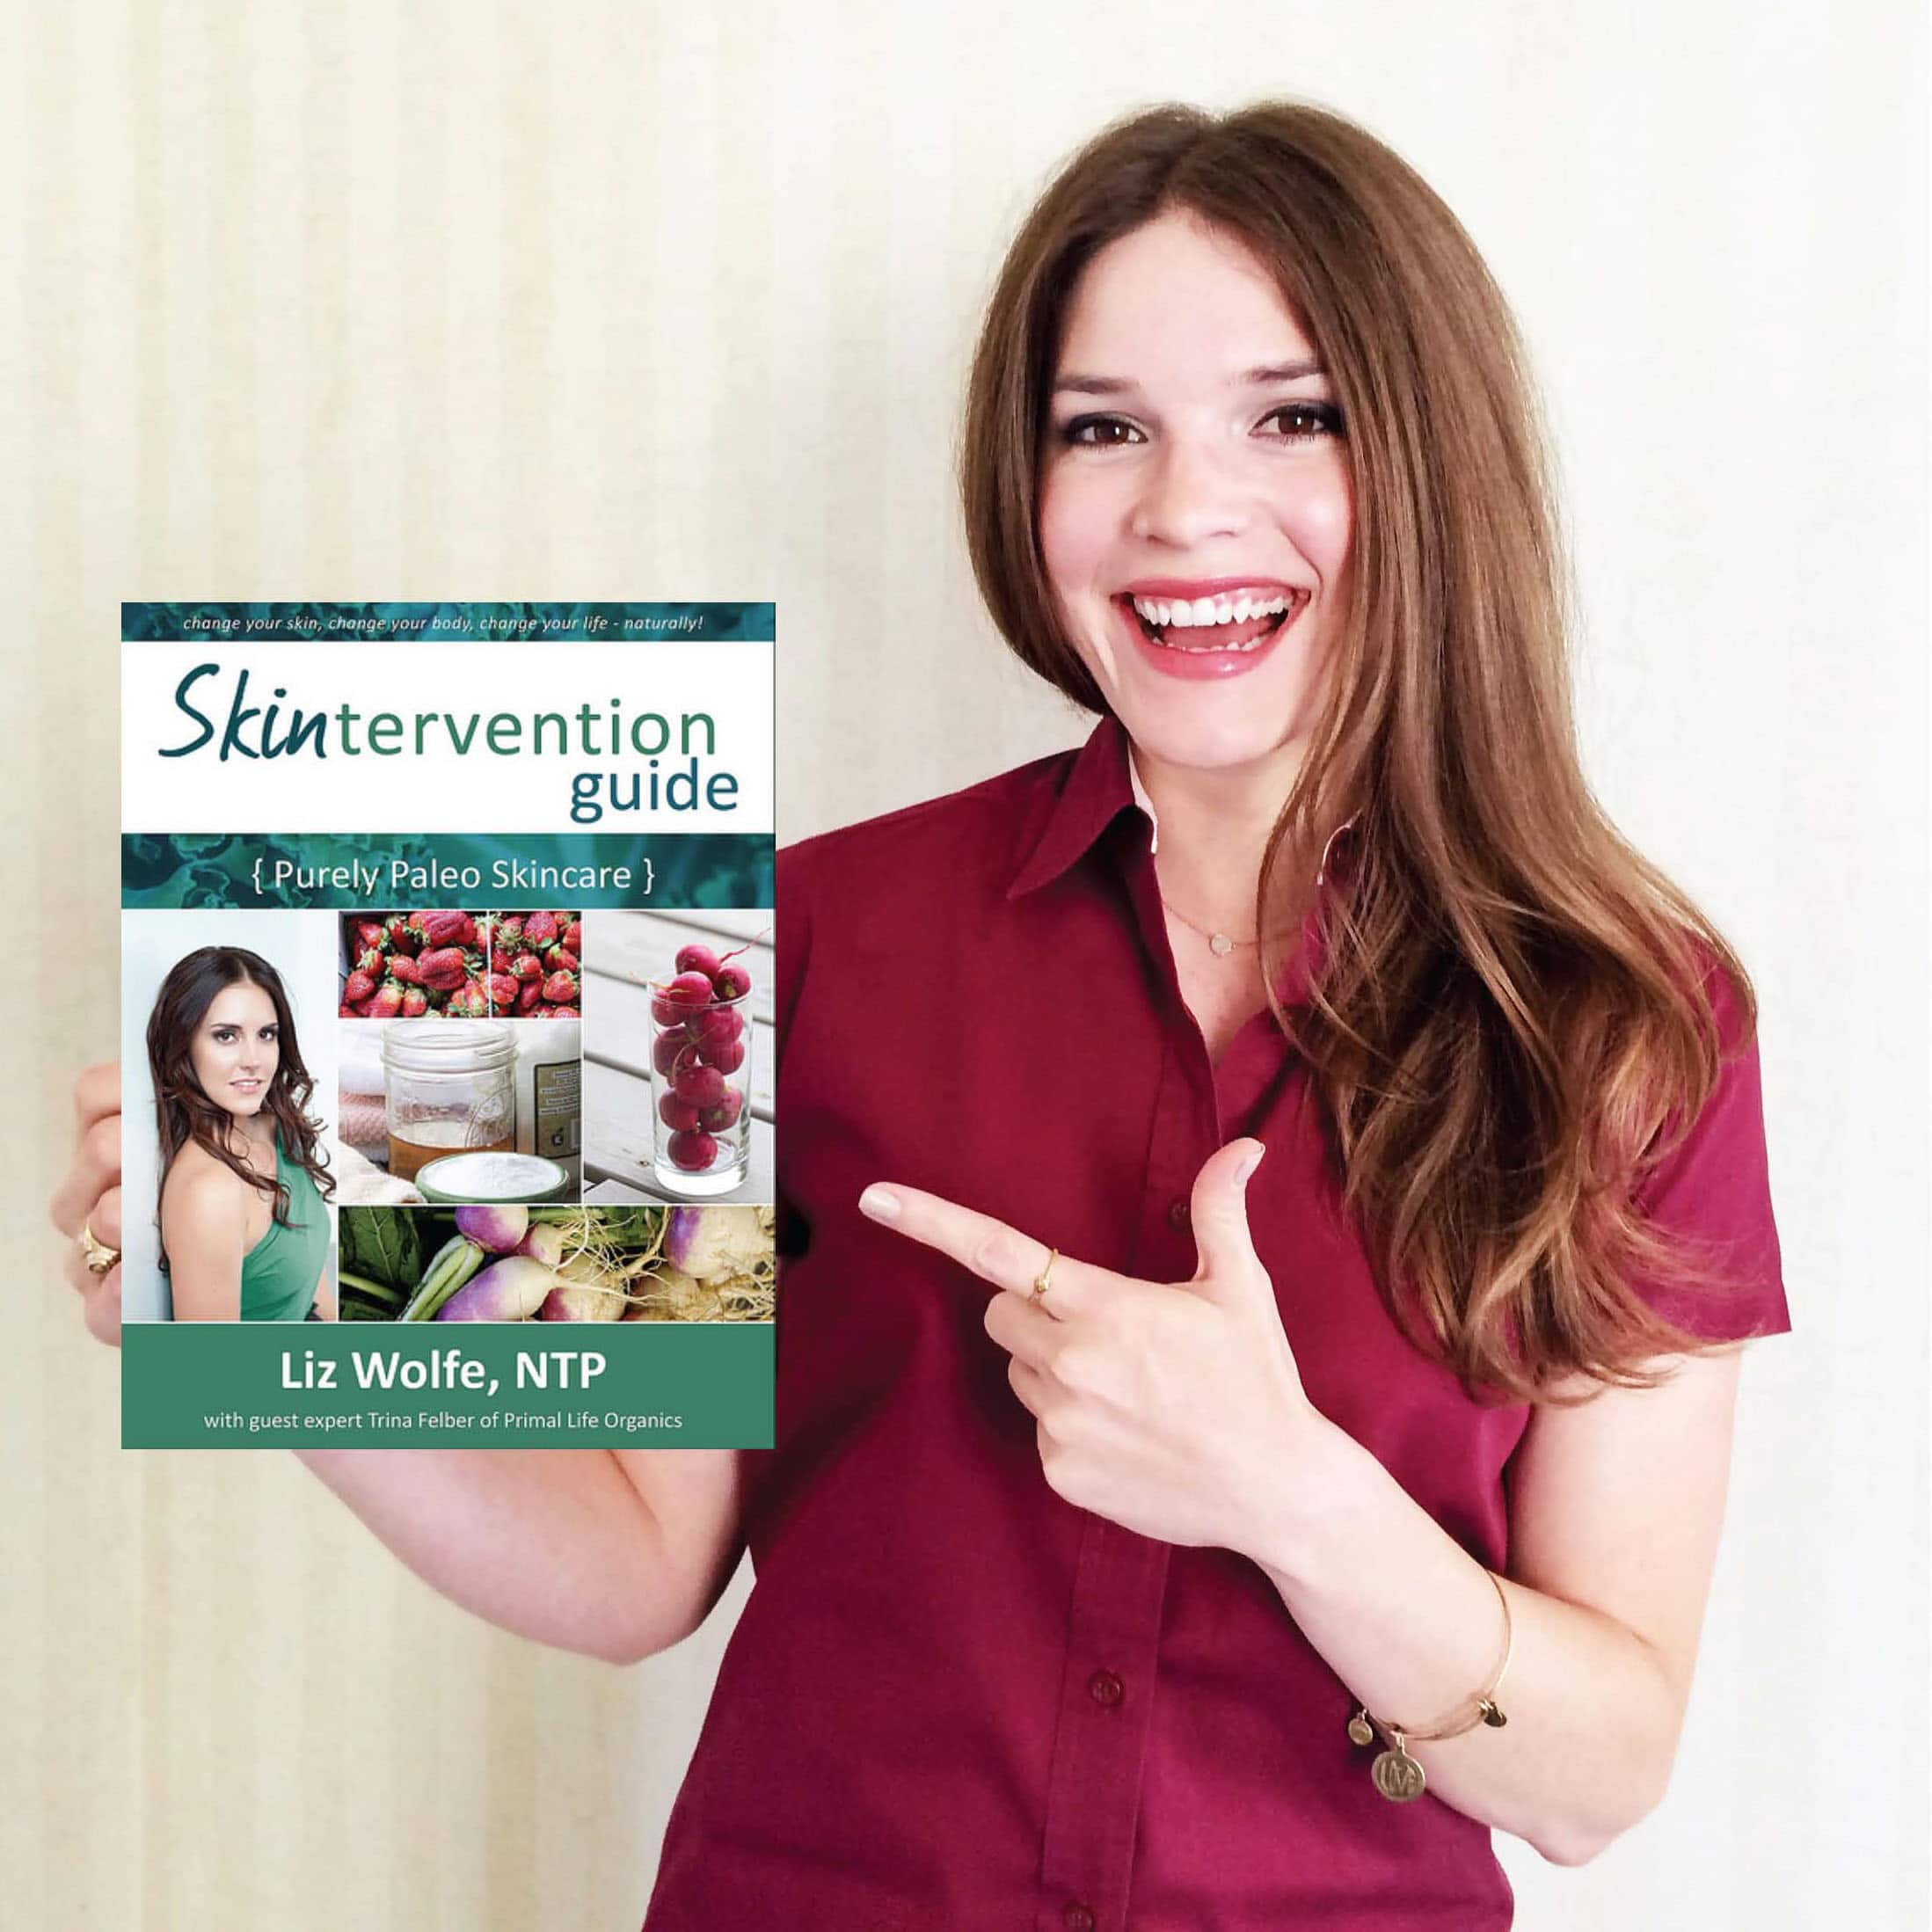 Skintervention Guide IG Giveaway | Fed+Fit